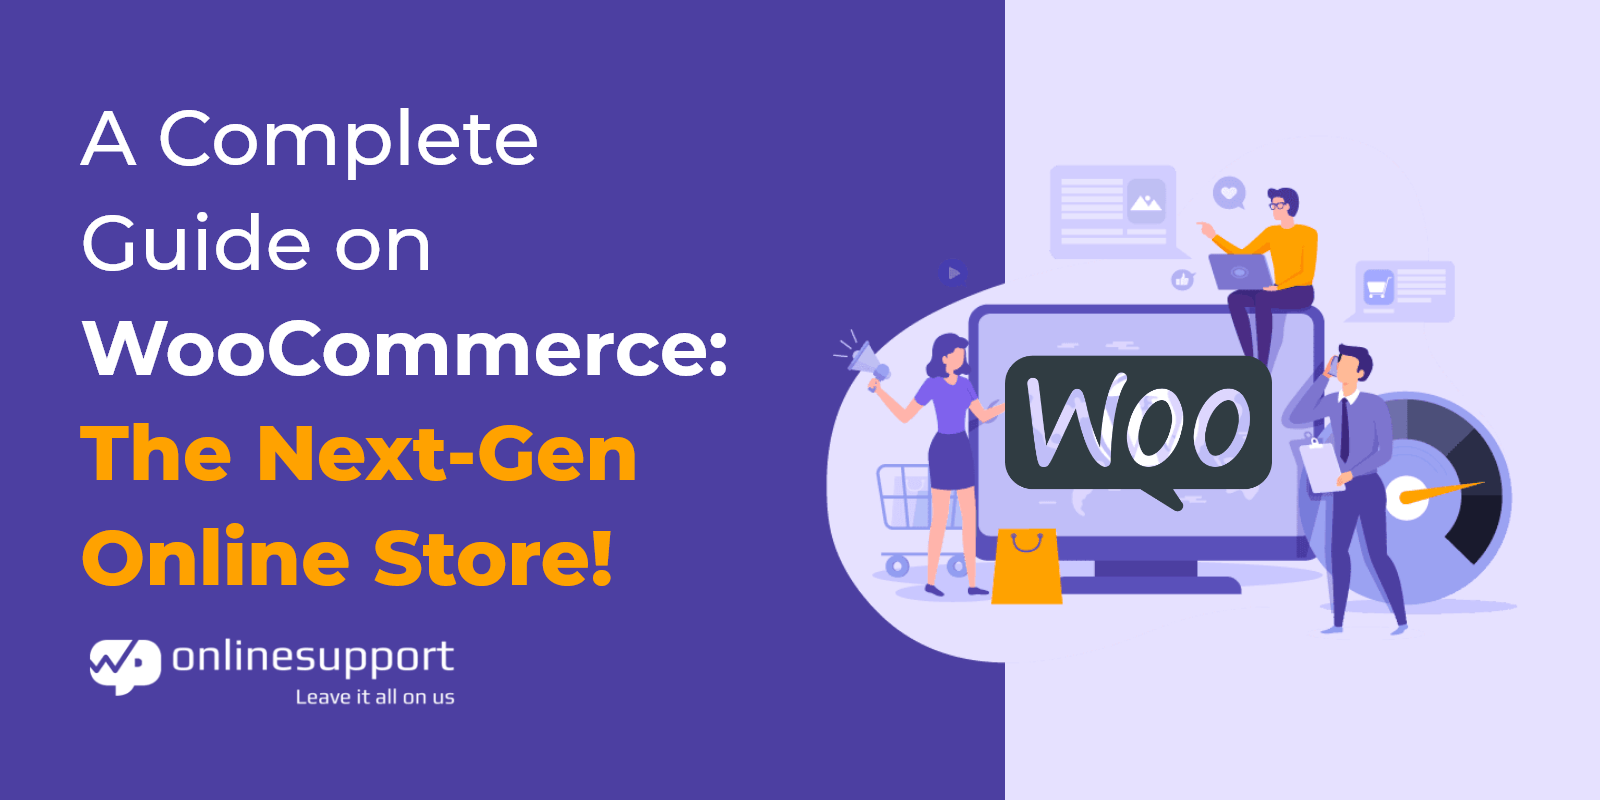 A Complete Guide on WooCommerce: The Next-Gen Online Store!